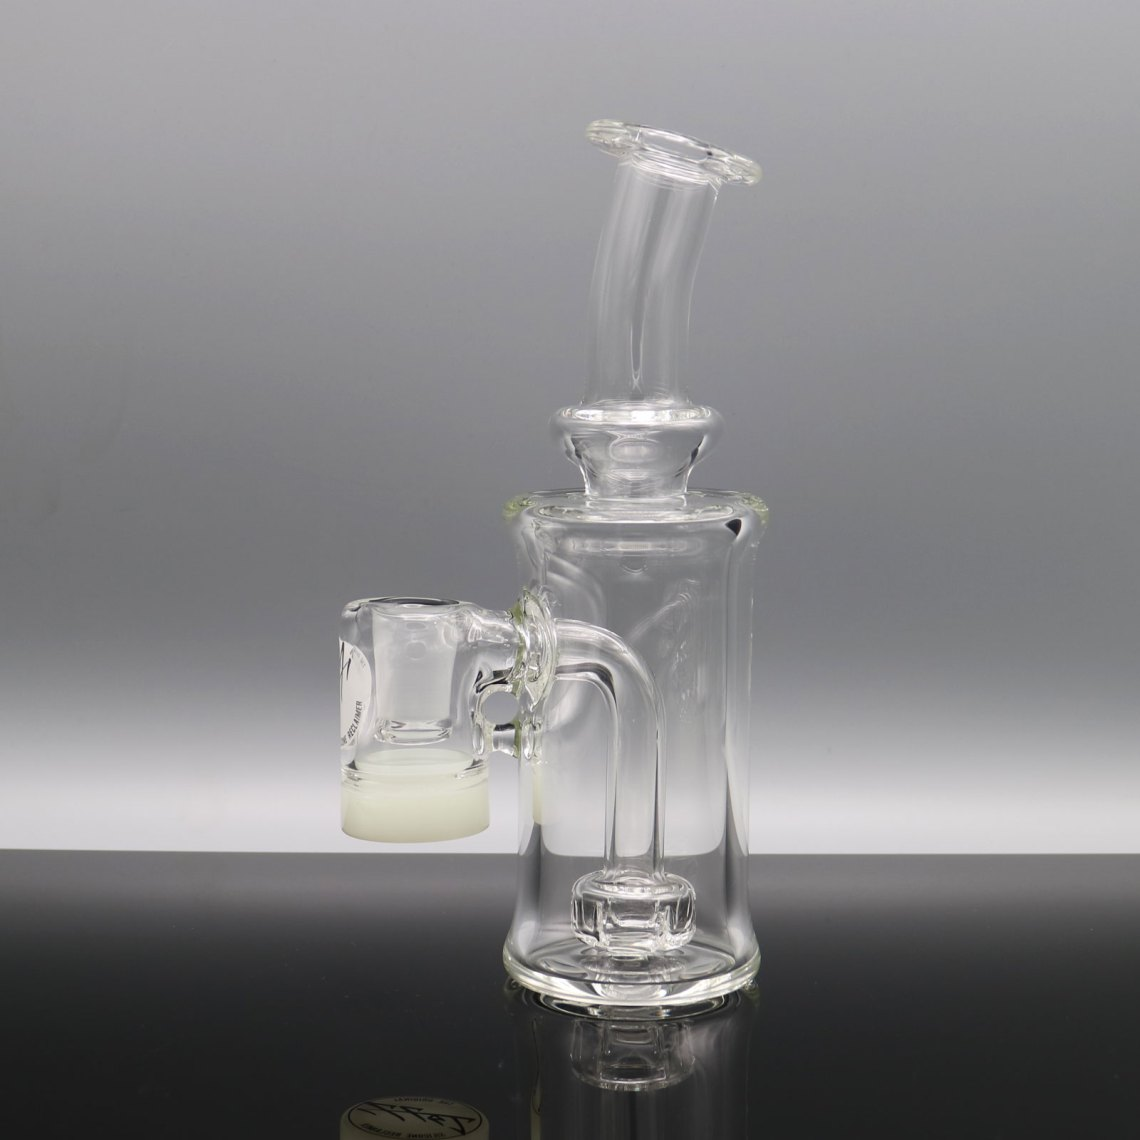 Jeff Patterson – Clear Small Silicone Reclaimer Rig